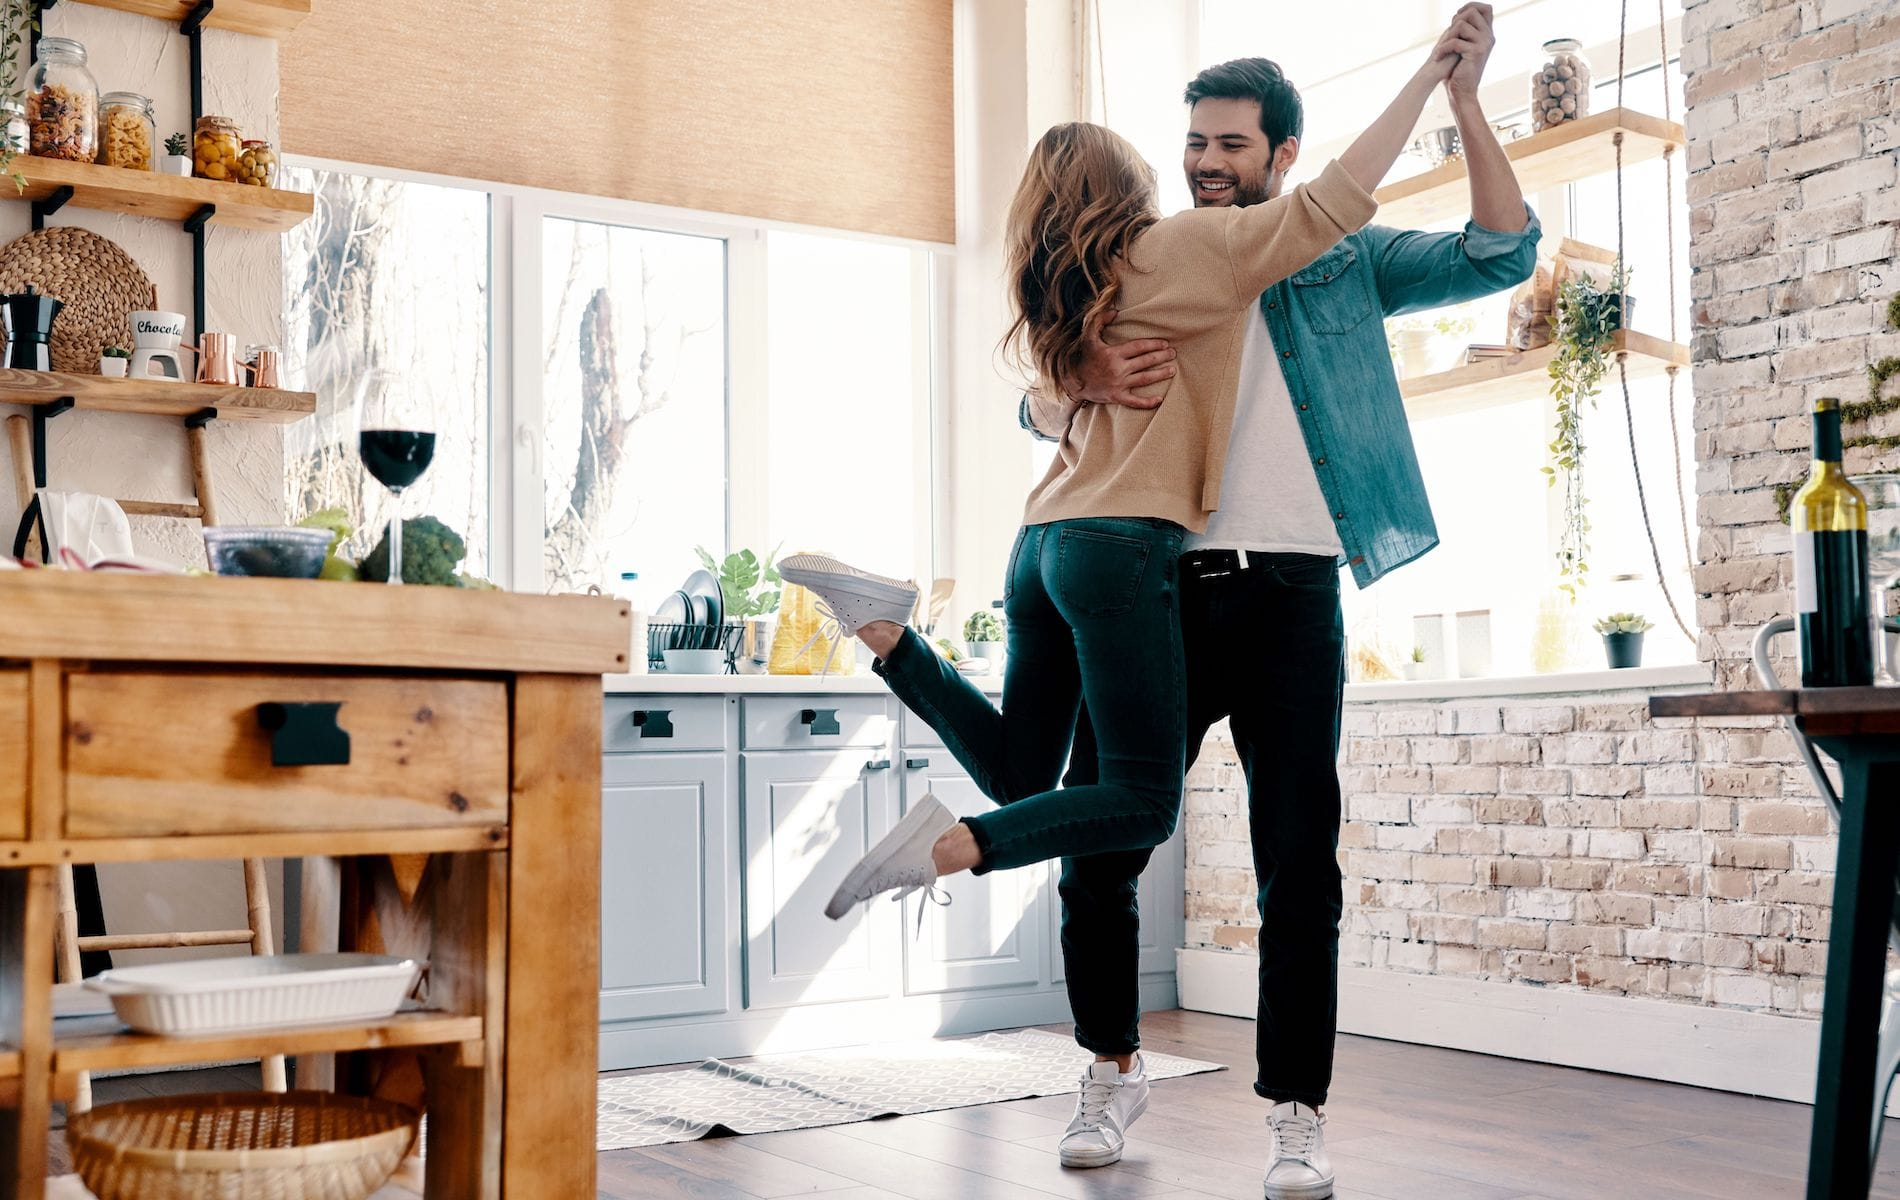 VIE Magazine, At-Home Date Ideas, Quarantined, COVID-19, Coronavirus, Date Nights, Couples, At Home Ideas, At Home Activities